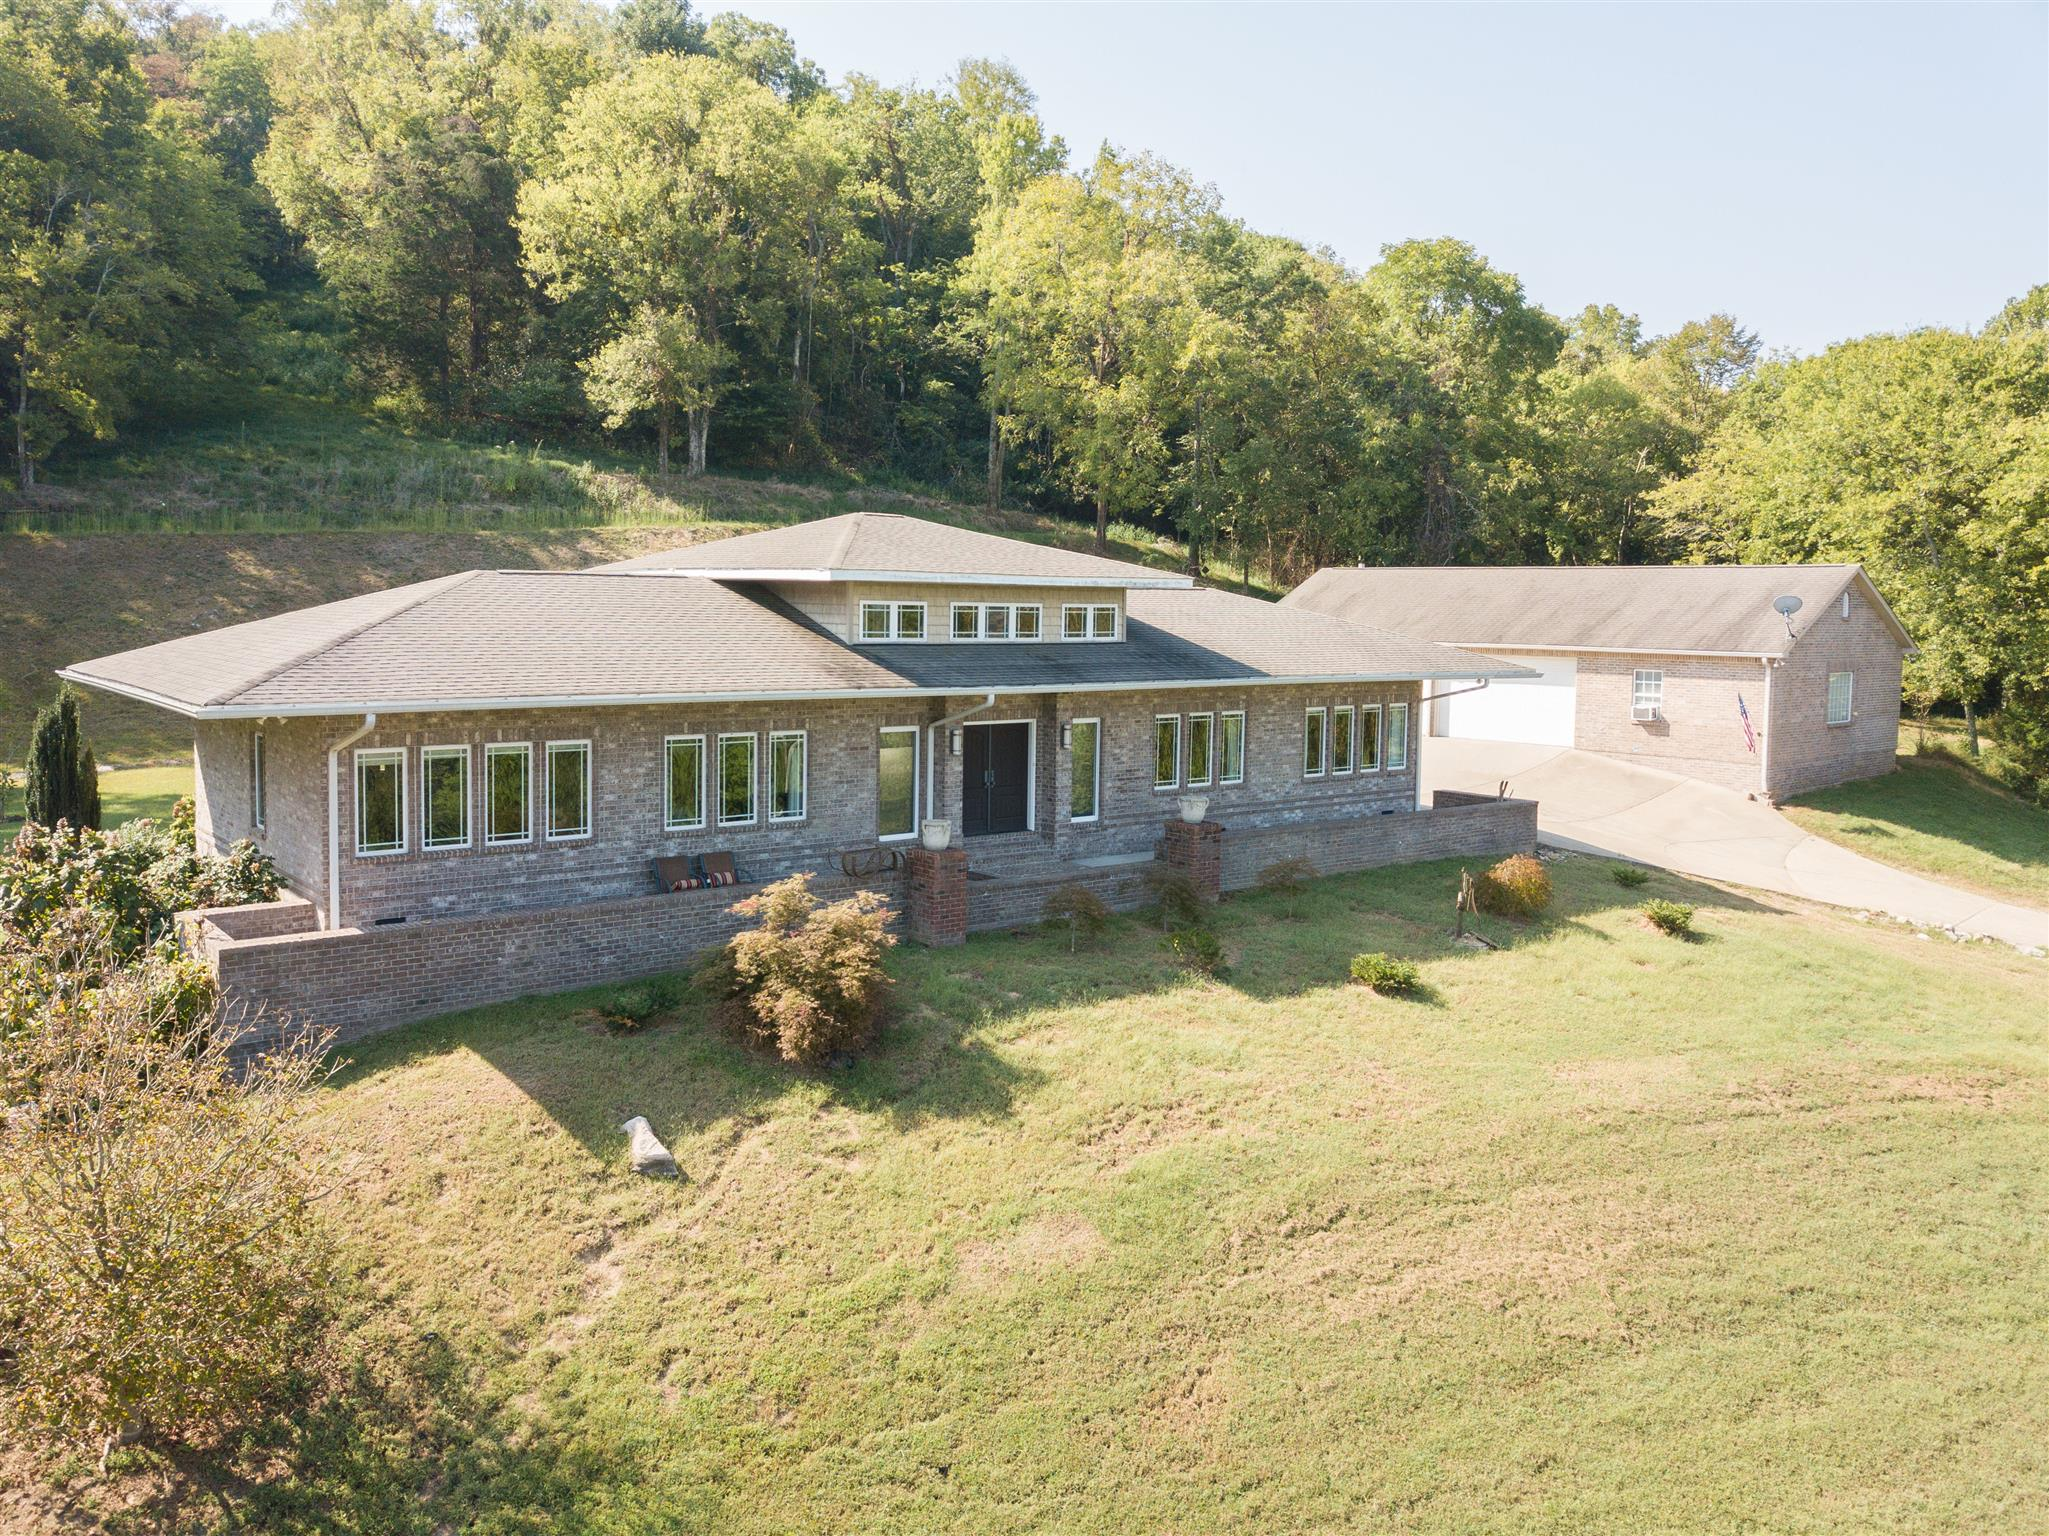 3056 Martin Hollow Rd, Culleoka, TN 38451 - Culleoka, TN real estate listing